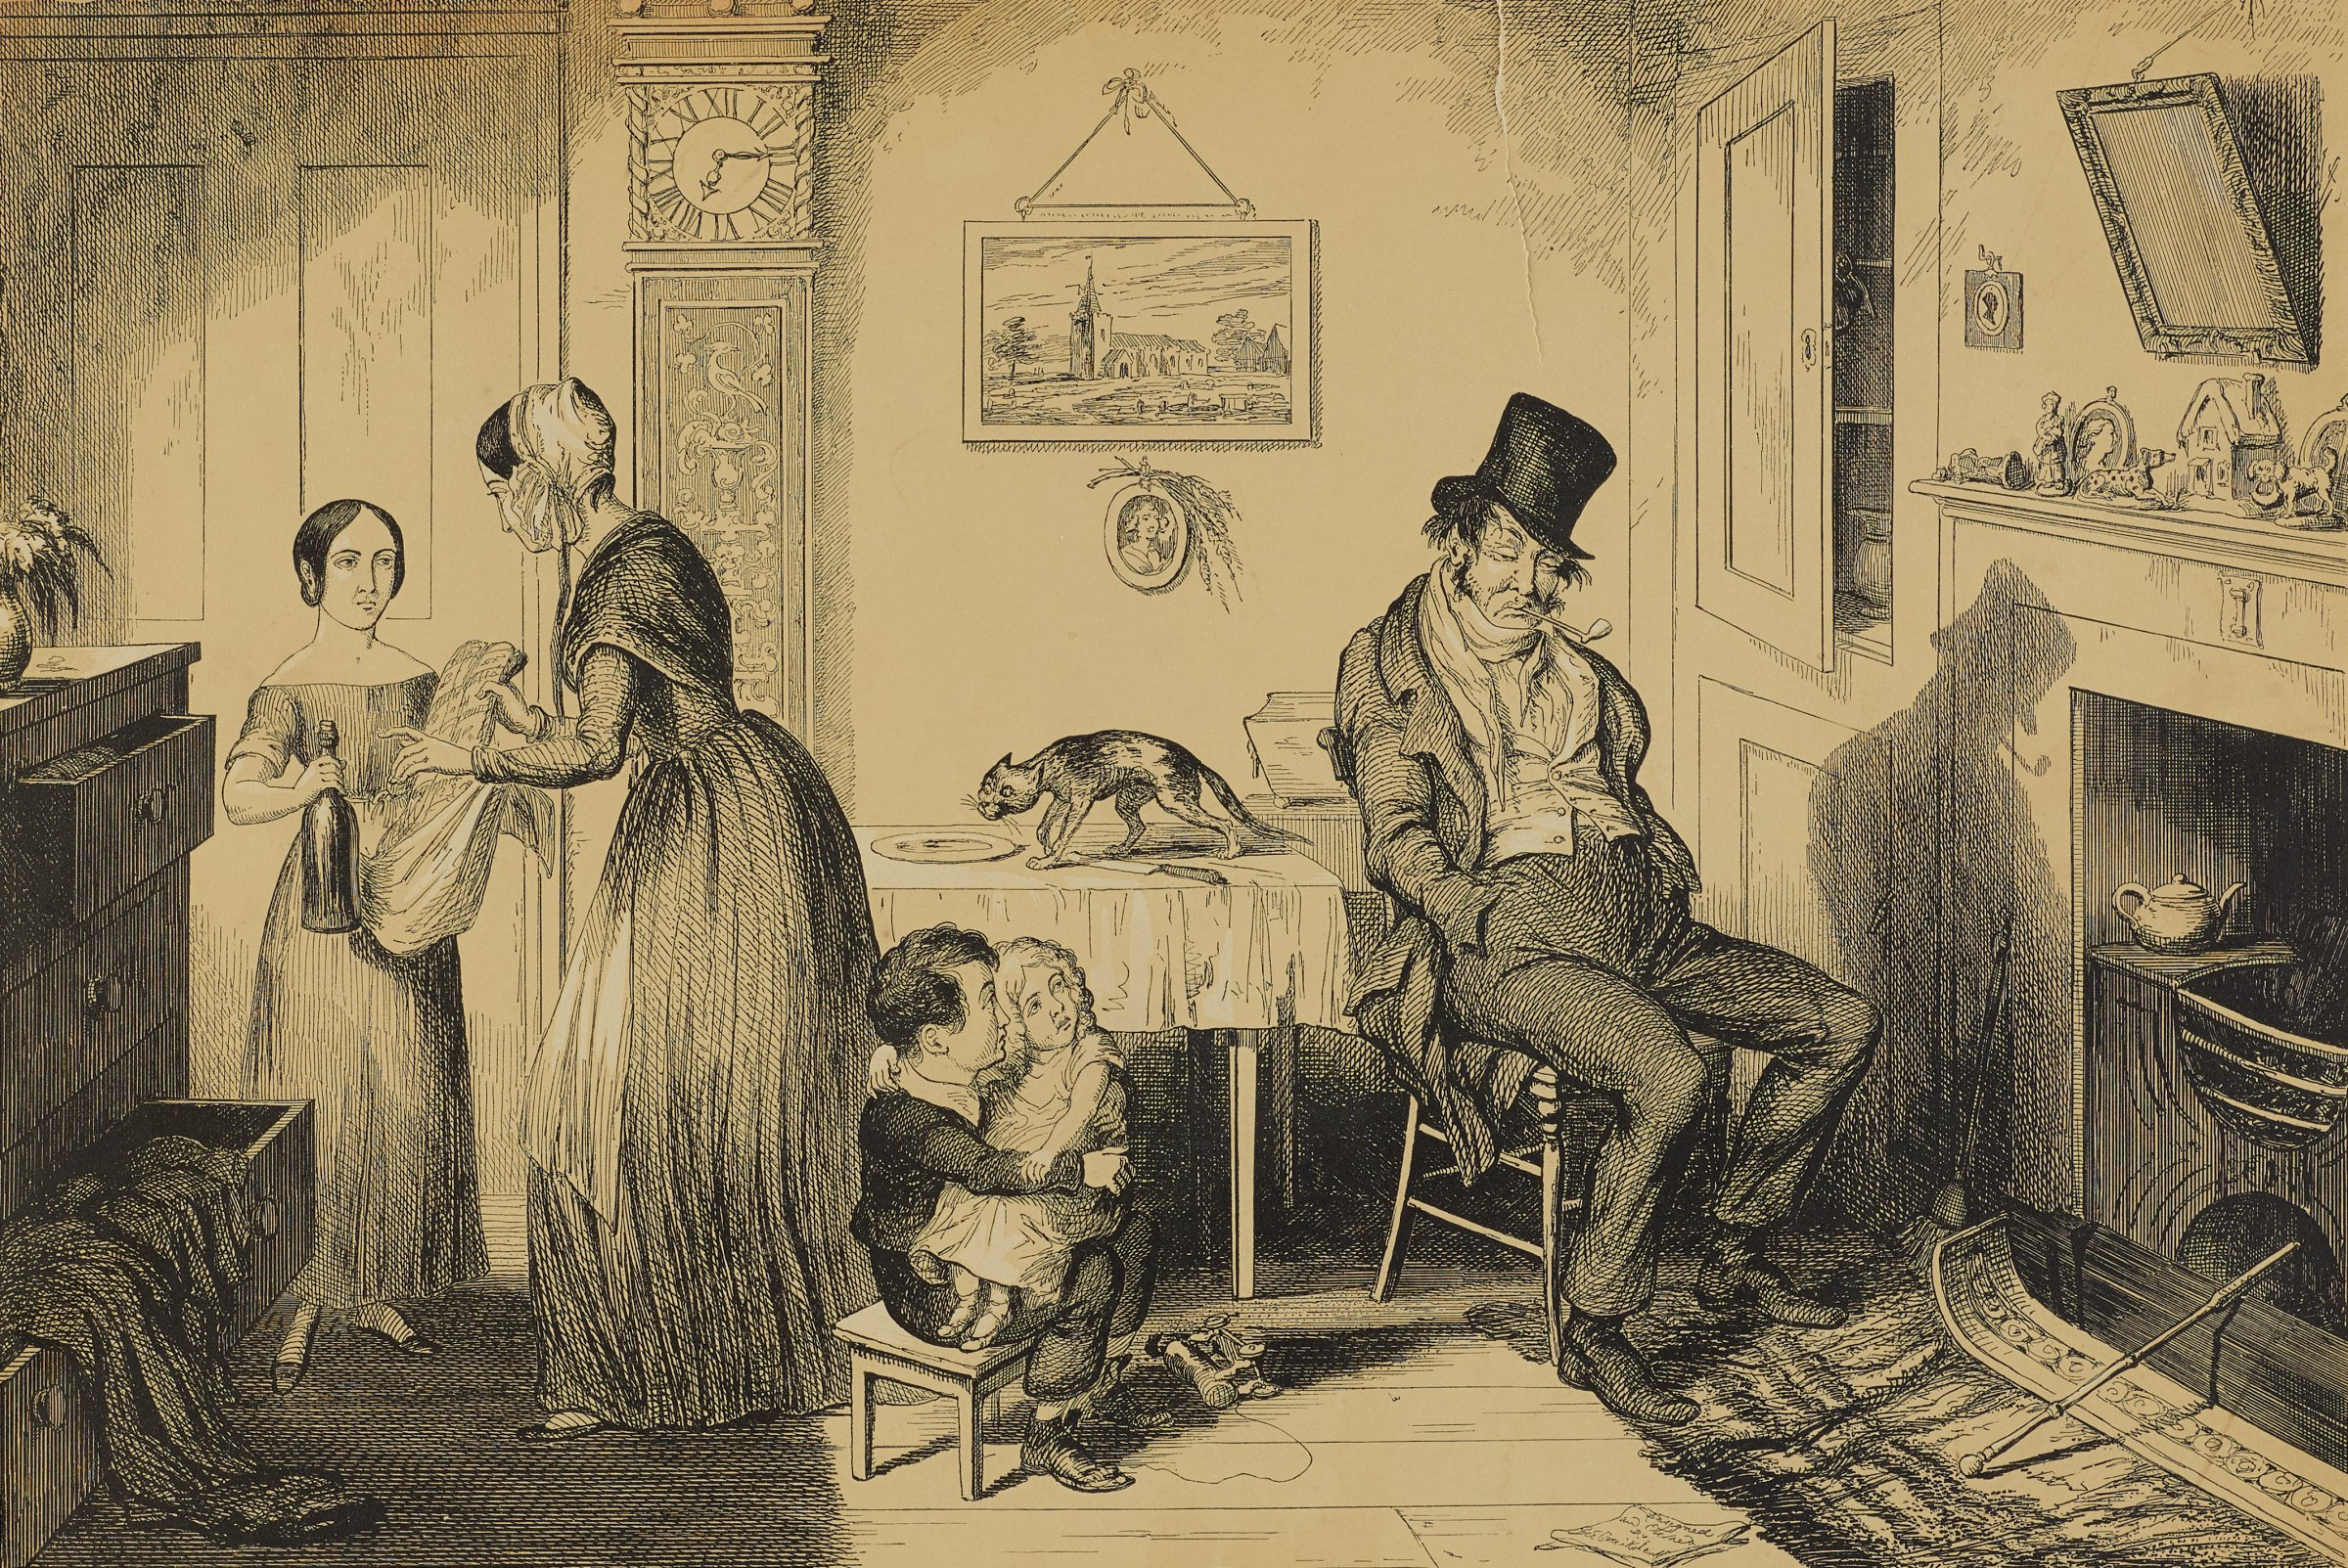 A man sits in a chair on the right side of the room with his hands in his pockets with a downcast expression. A woman and young girl hold a garment and a bottle in their hands on the left side of the room.